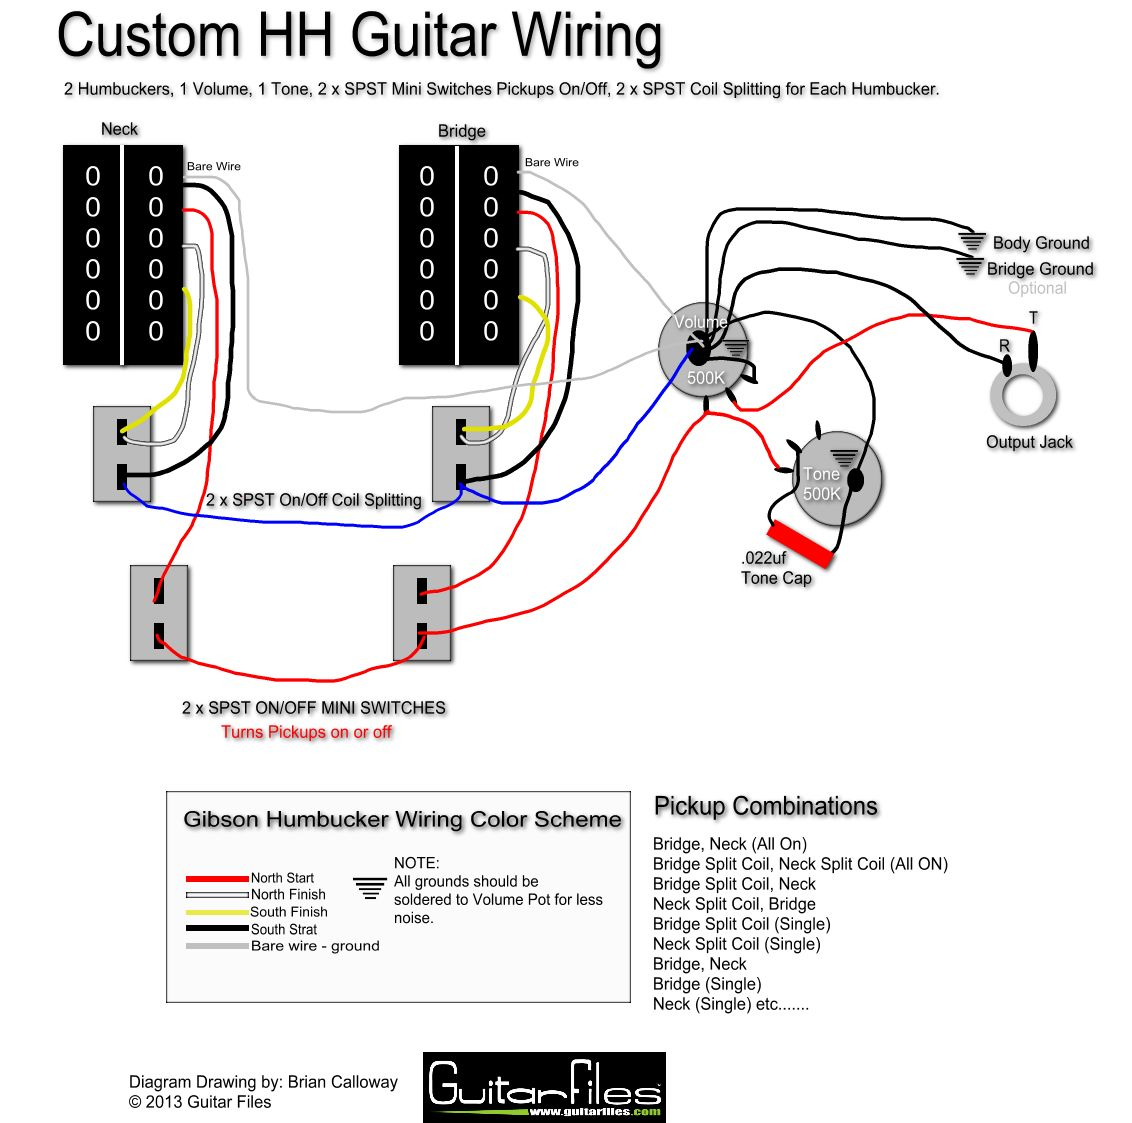 custom hh wiring diagram with spst coil splitting and spst switching rh pinterest com Seymour Duncan JB Wiring-Diagram 5-Way Strat Switch Wiring Diagram